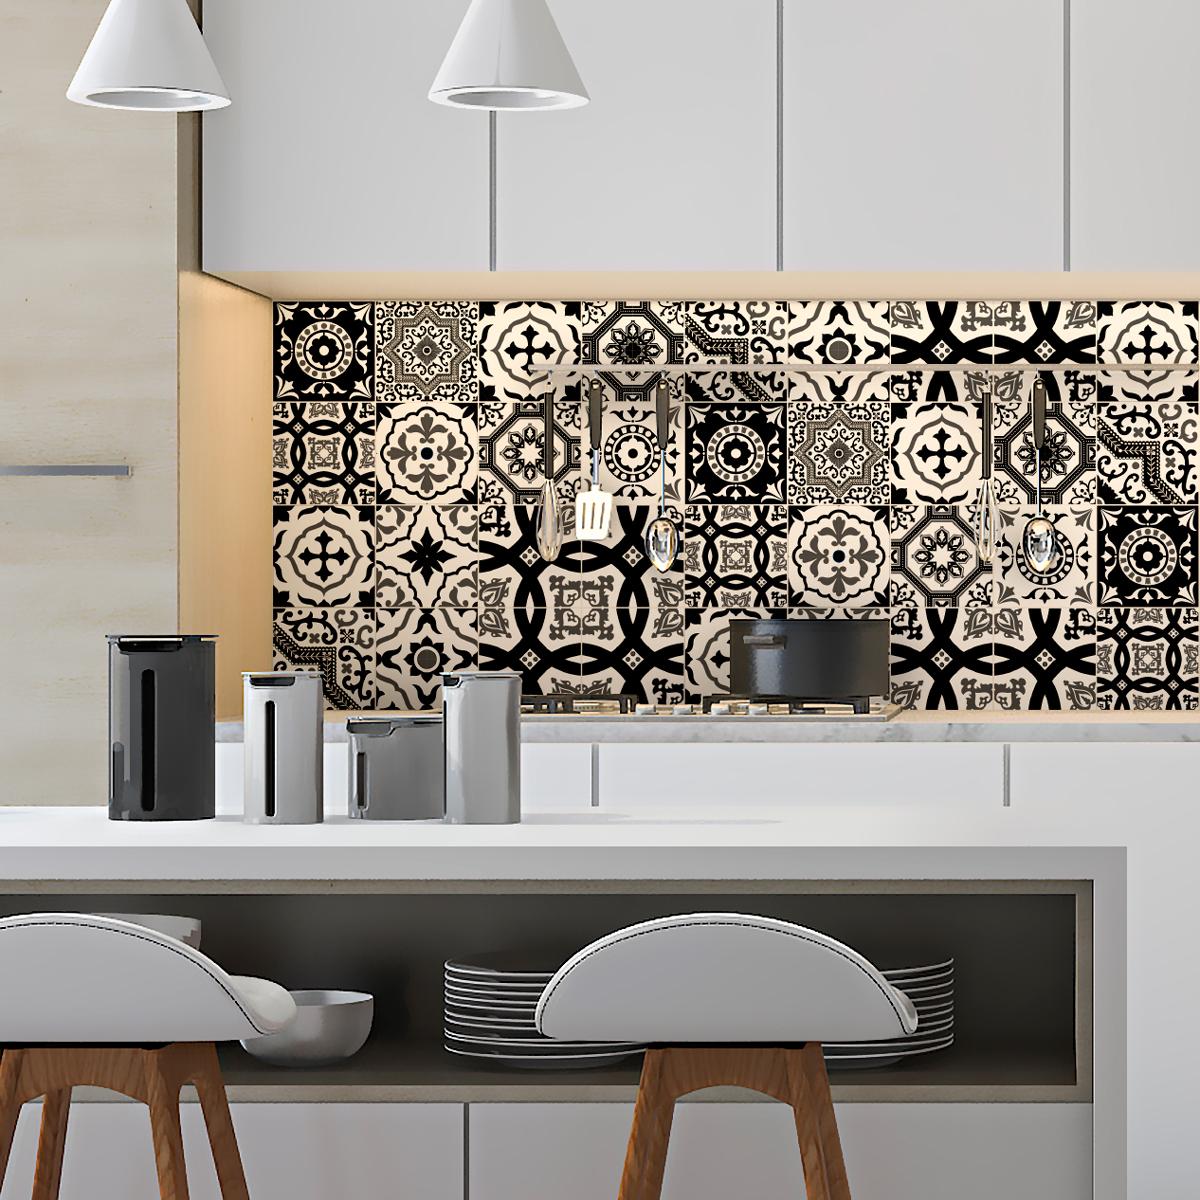 16 stickers carrelages azulejos modernes nuance noir et. Black Bedroom Furniture Sets. Home Design Ideas